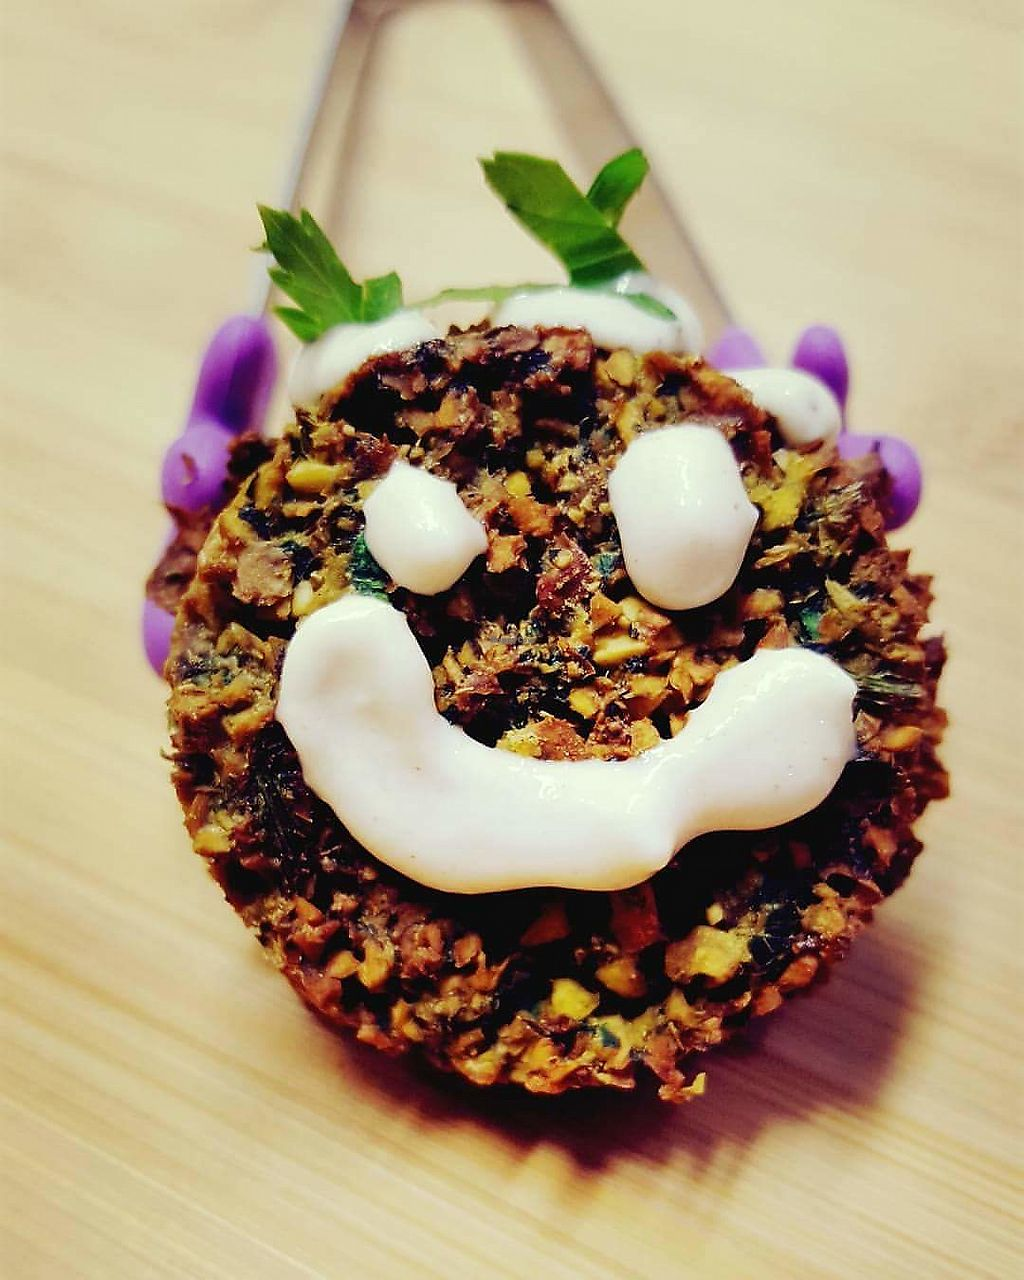 """Photo of Chickpeas Creations  by <a href=""""/members/profile/ChickpeasCreations"""">ChickpeasCreations</a> <br/>Happy Falafel <br/> January 28, 2018  - <a href='/contact/abuse/image/110574/351756'>Report</a>"""